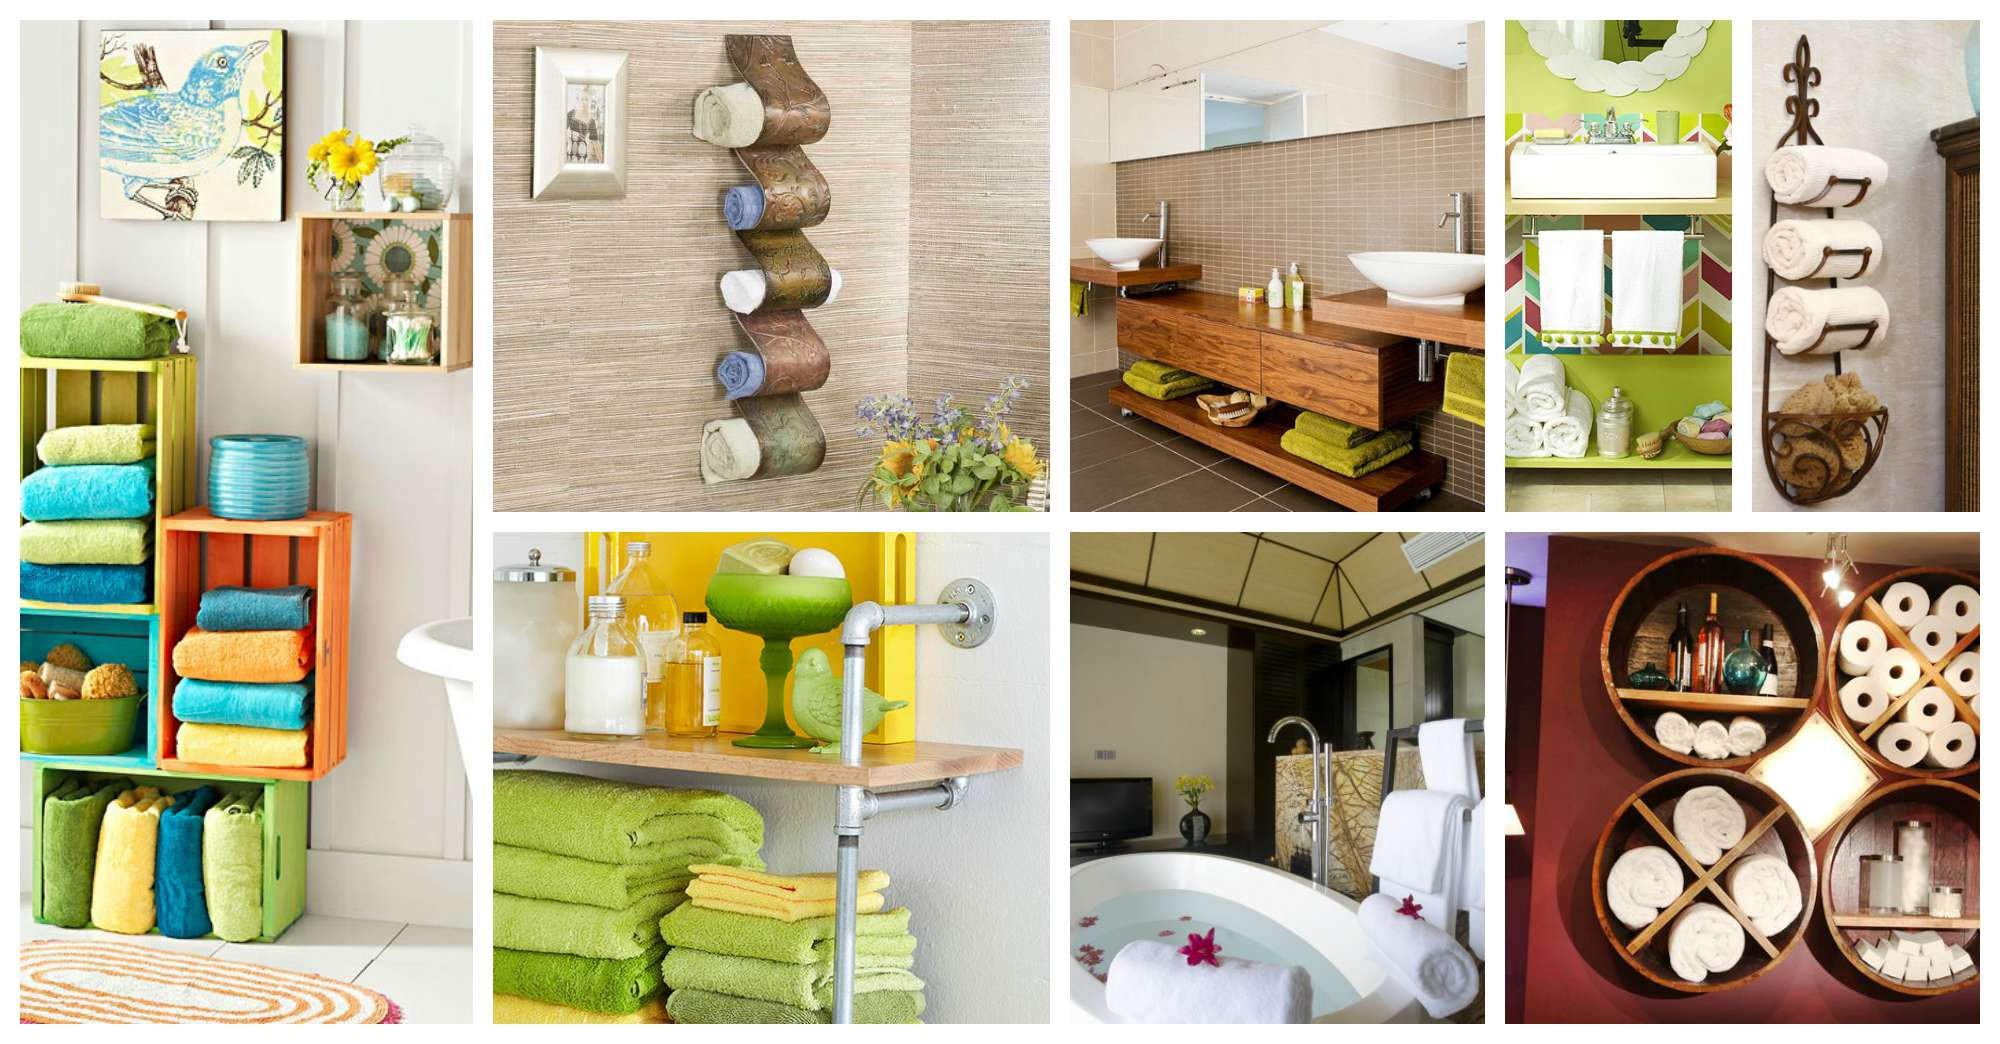 20 creative bathroom towel storage ideas - Towel Storage